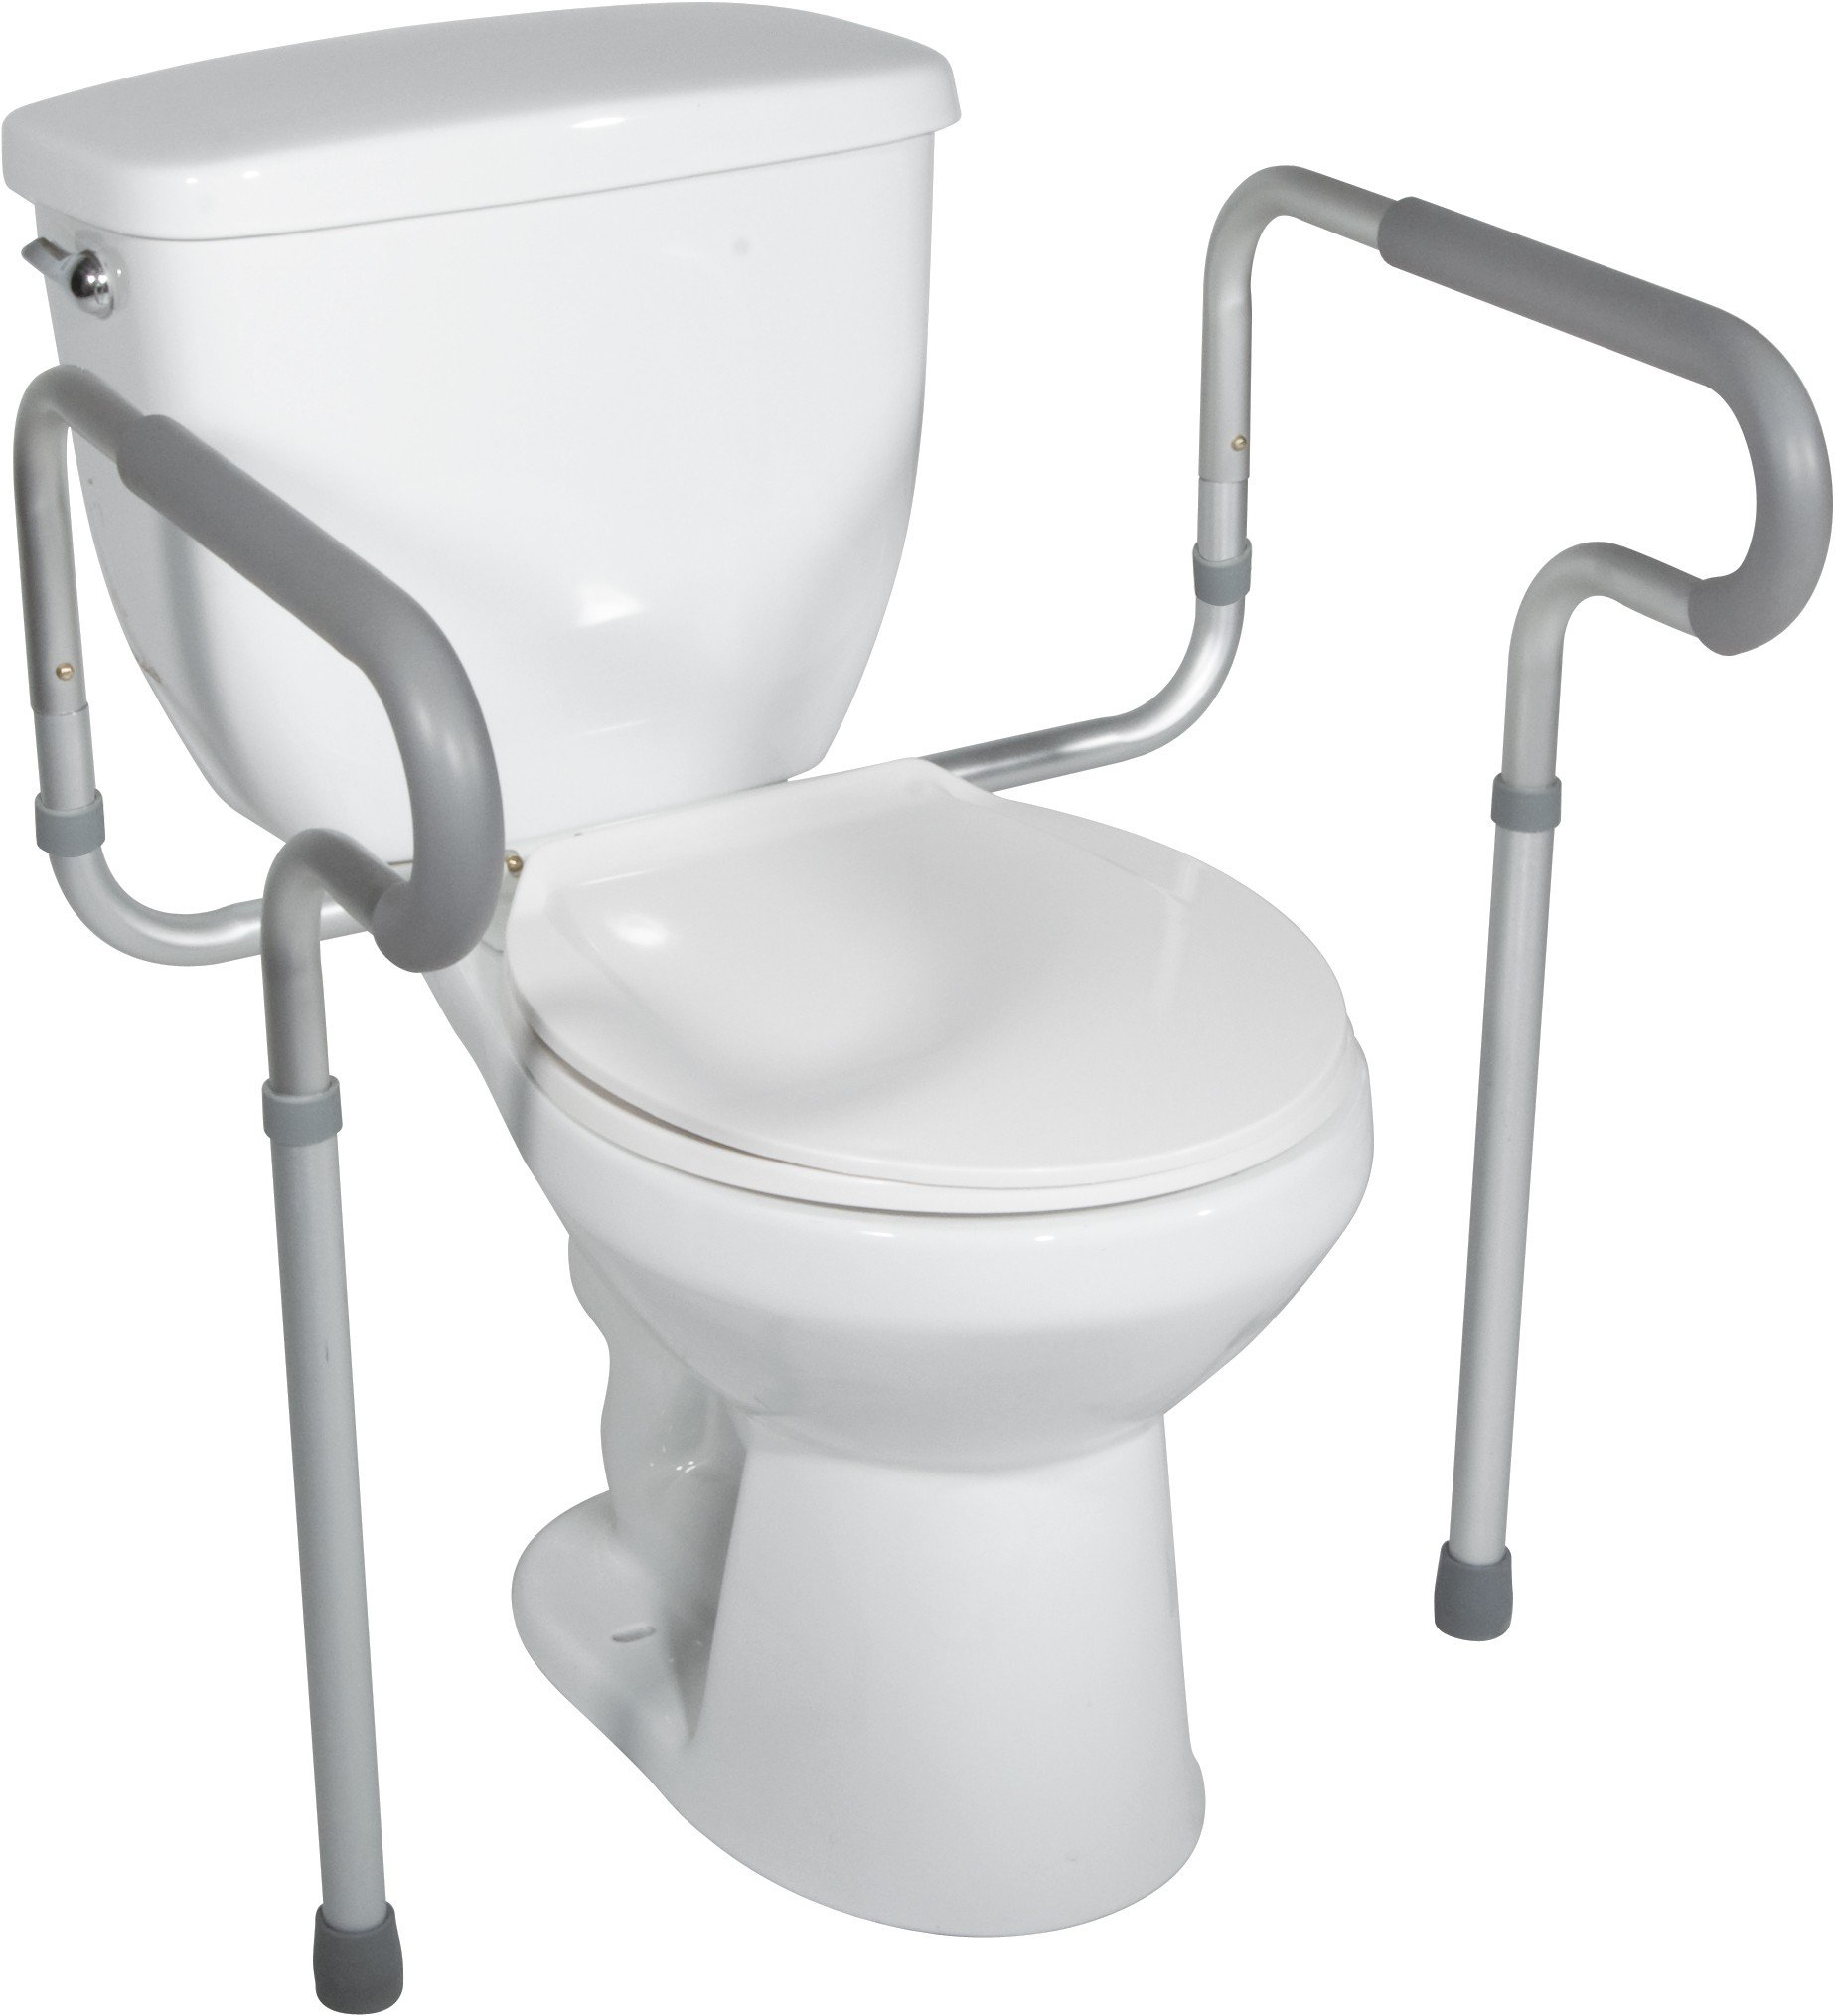 Drive Medical toilet safety frame rail